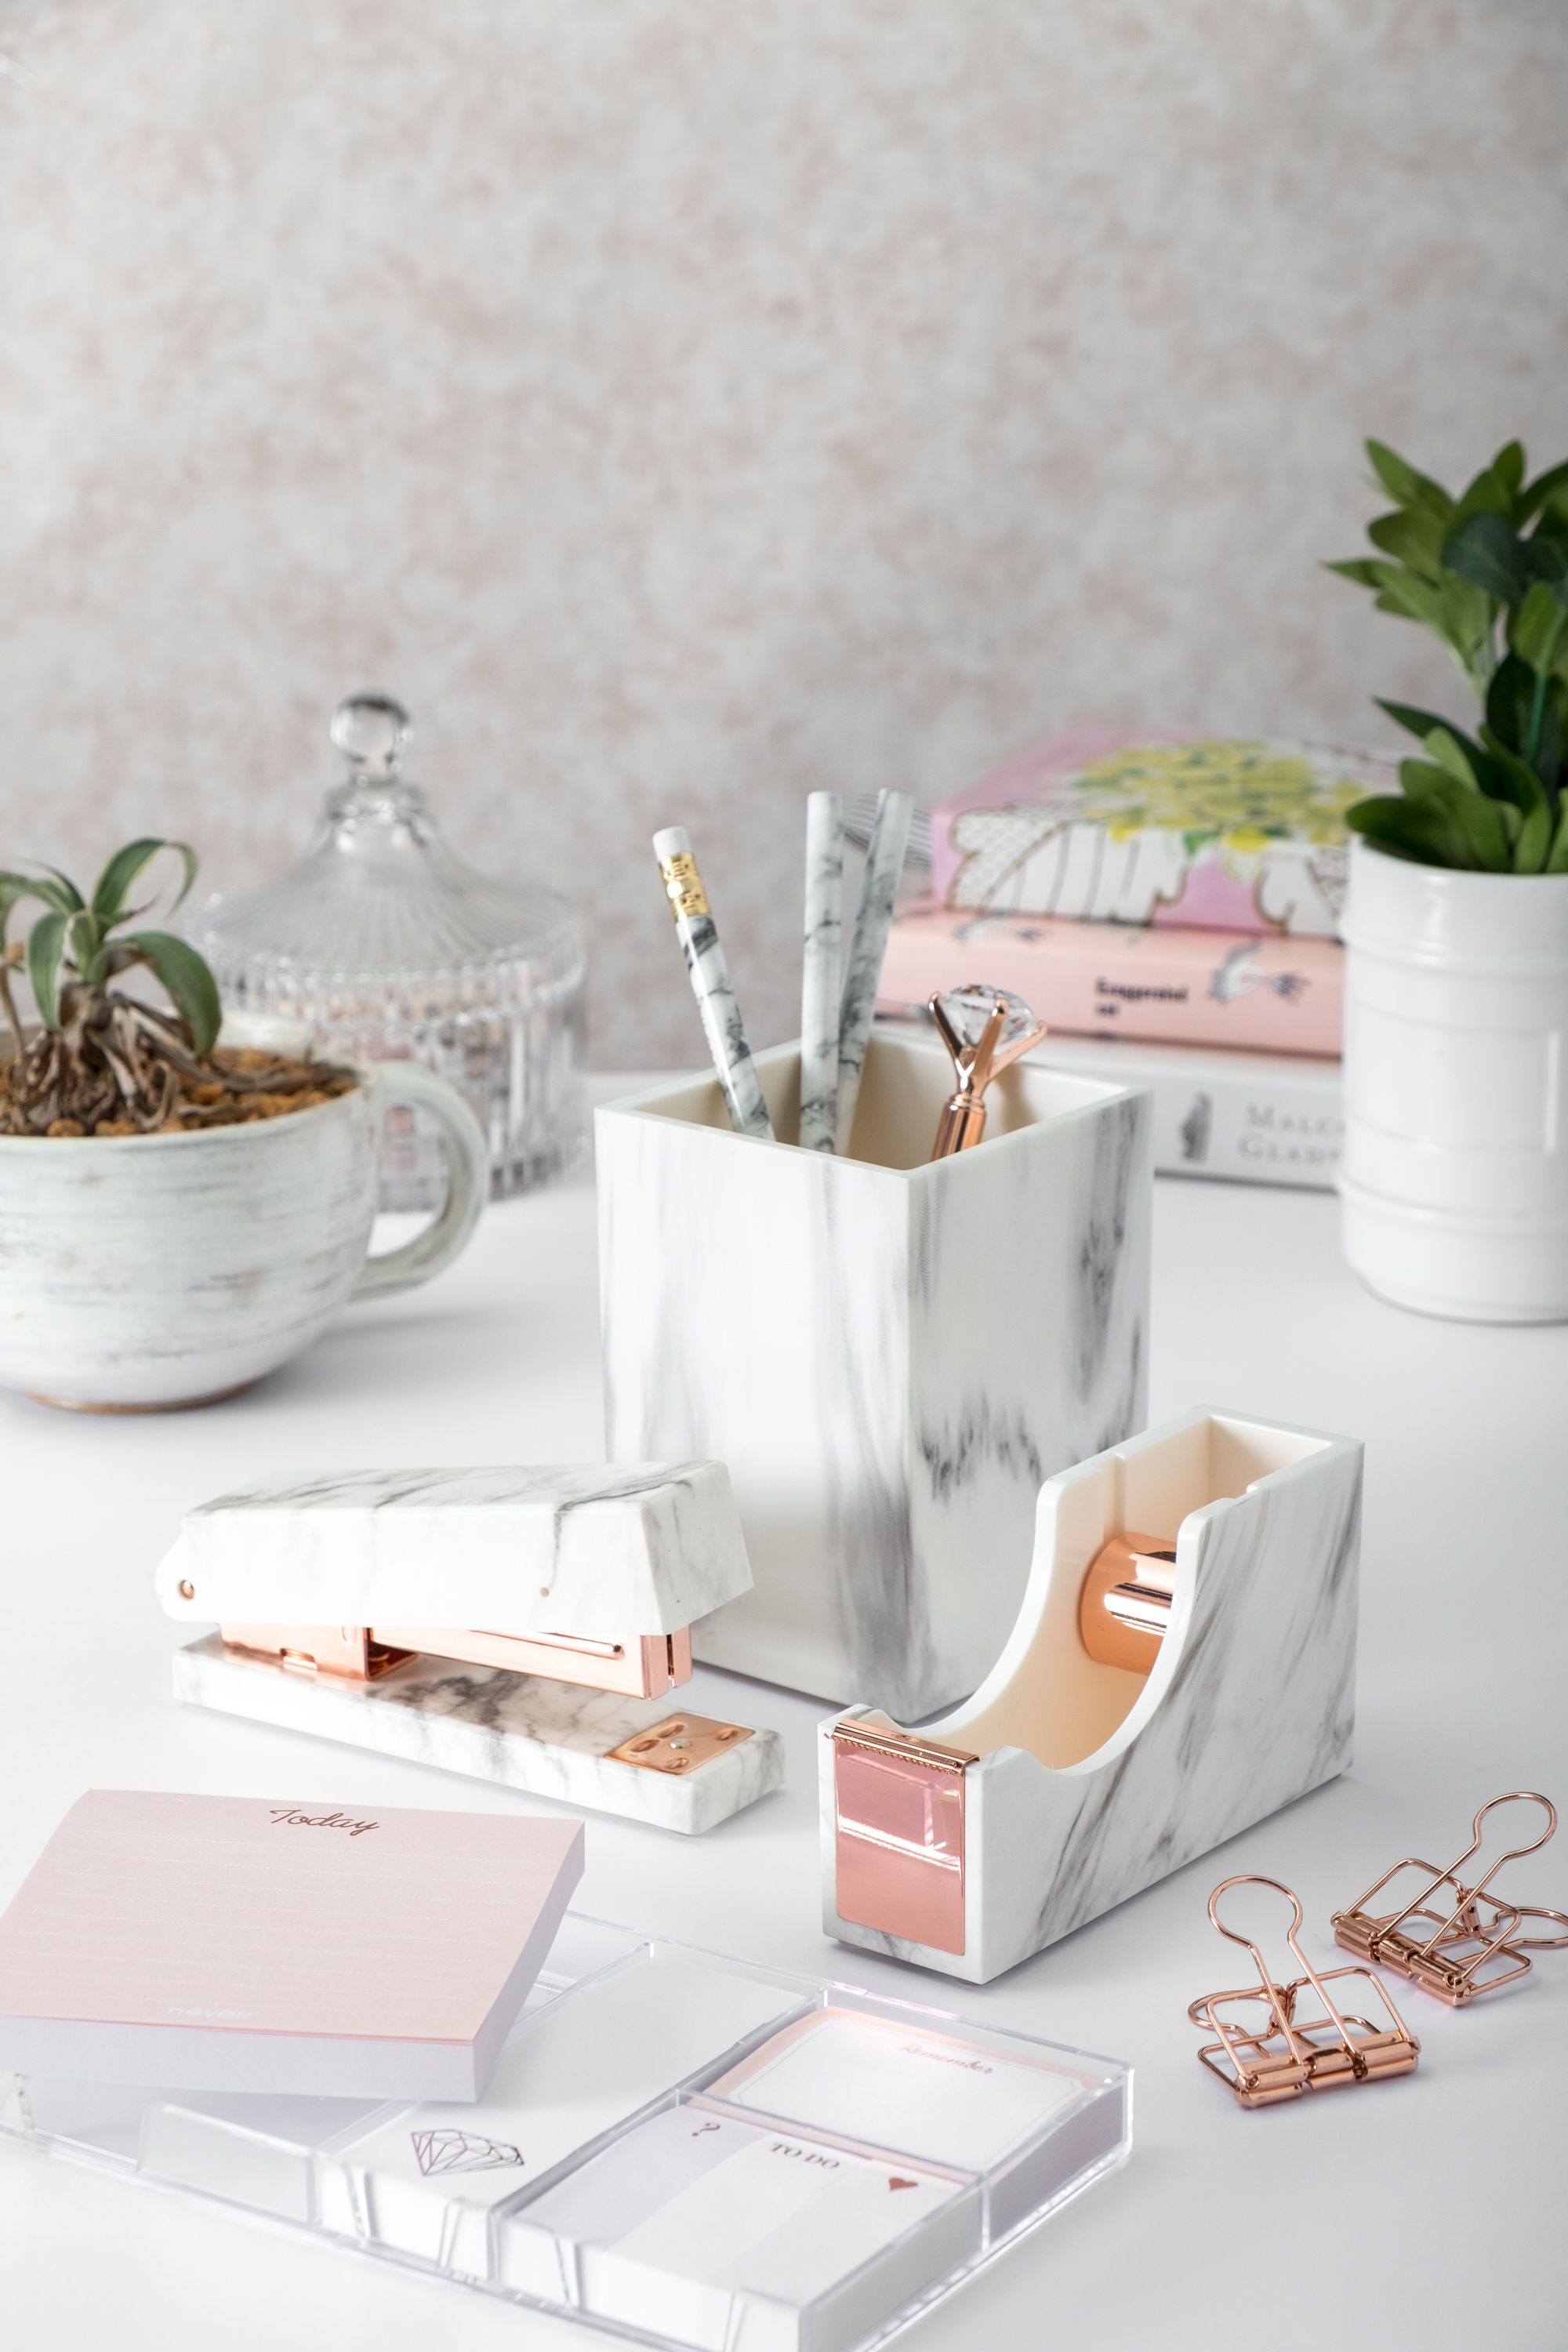 Marble Desk Set with Pen Holder, Tape Dispenser and Stapler